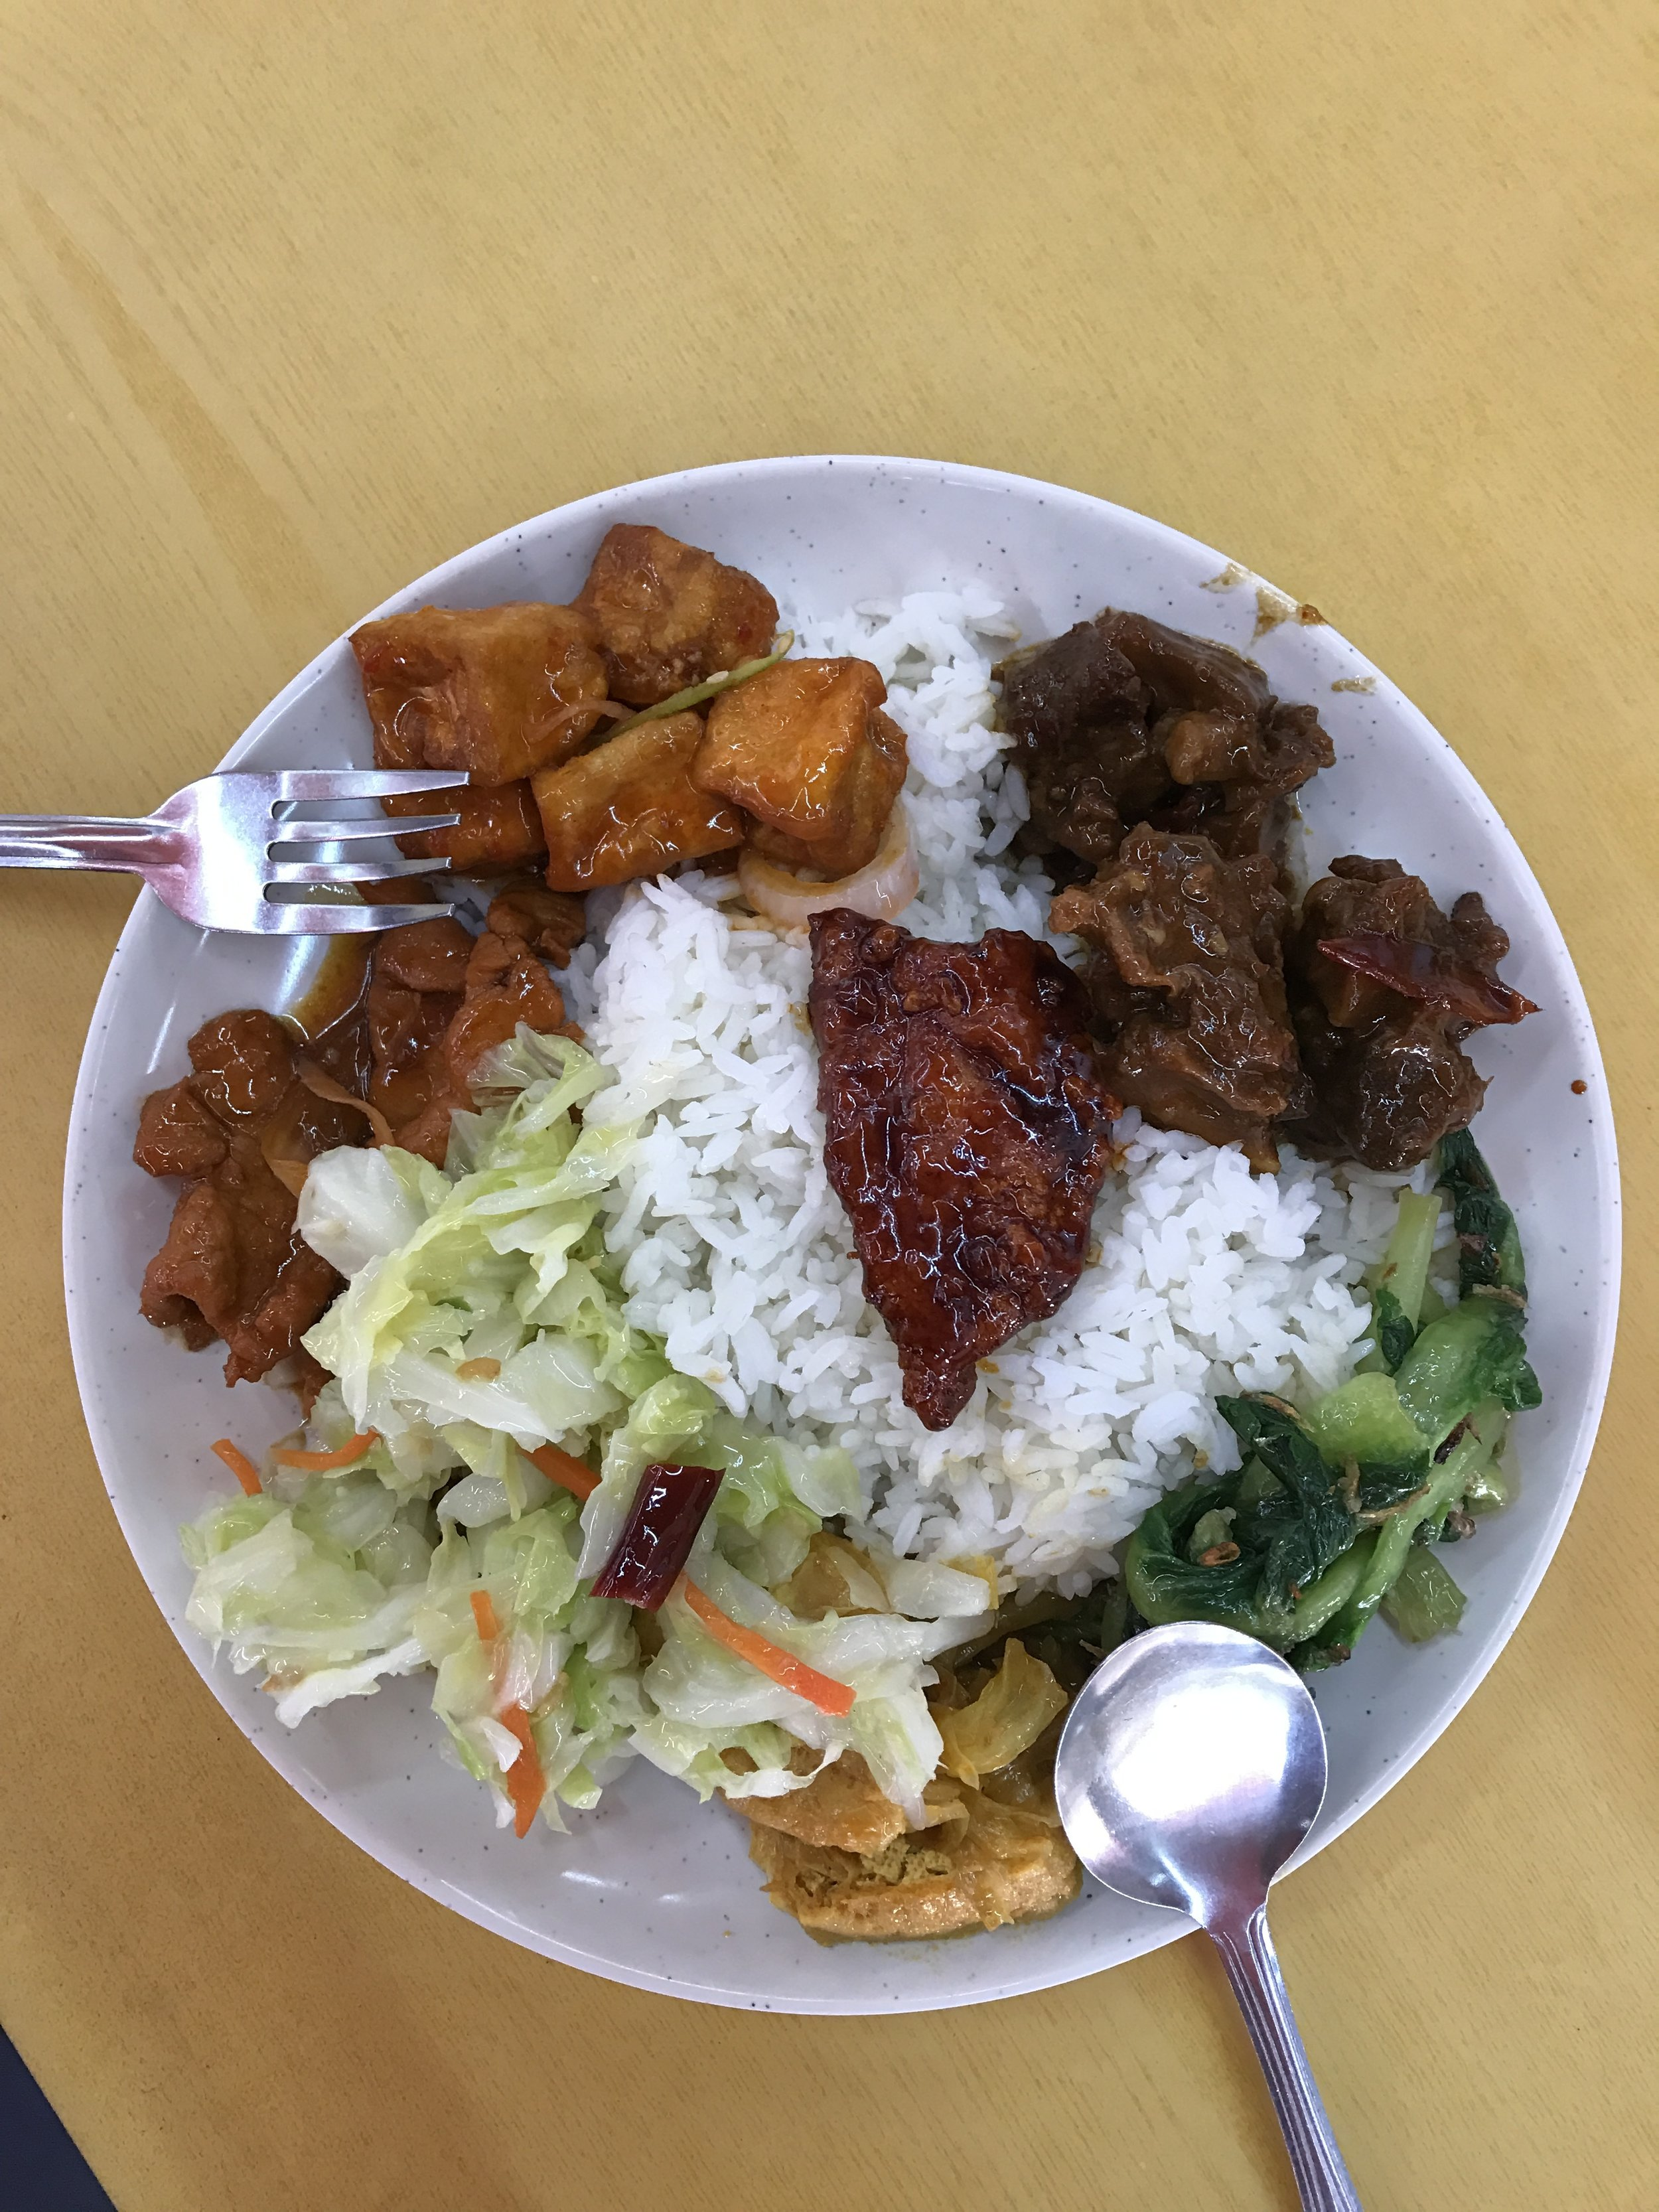 Buffet lunch - all this for 75 cents.